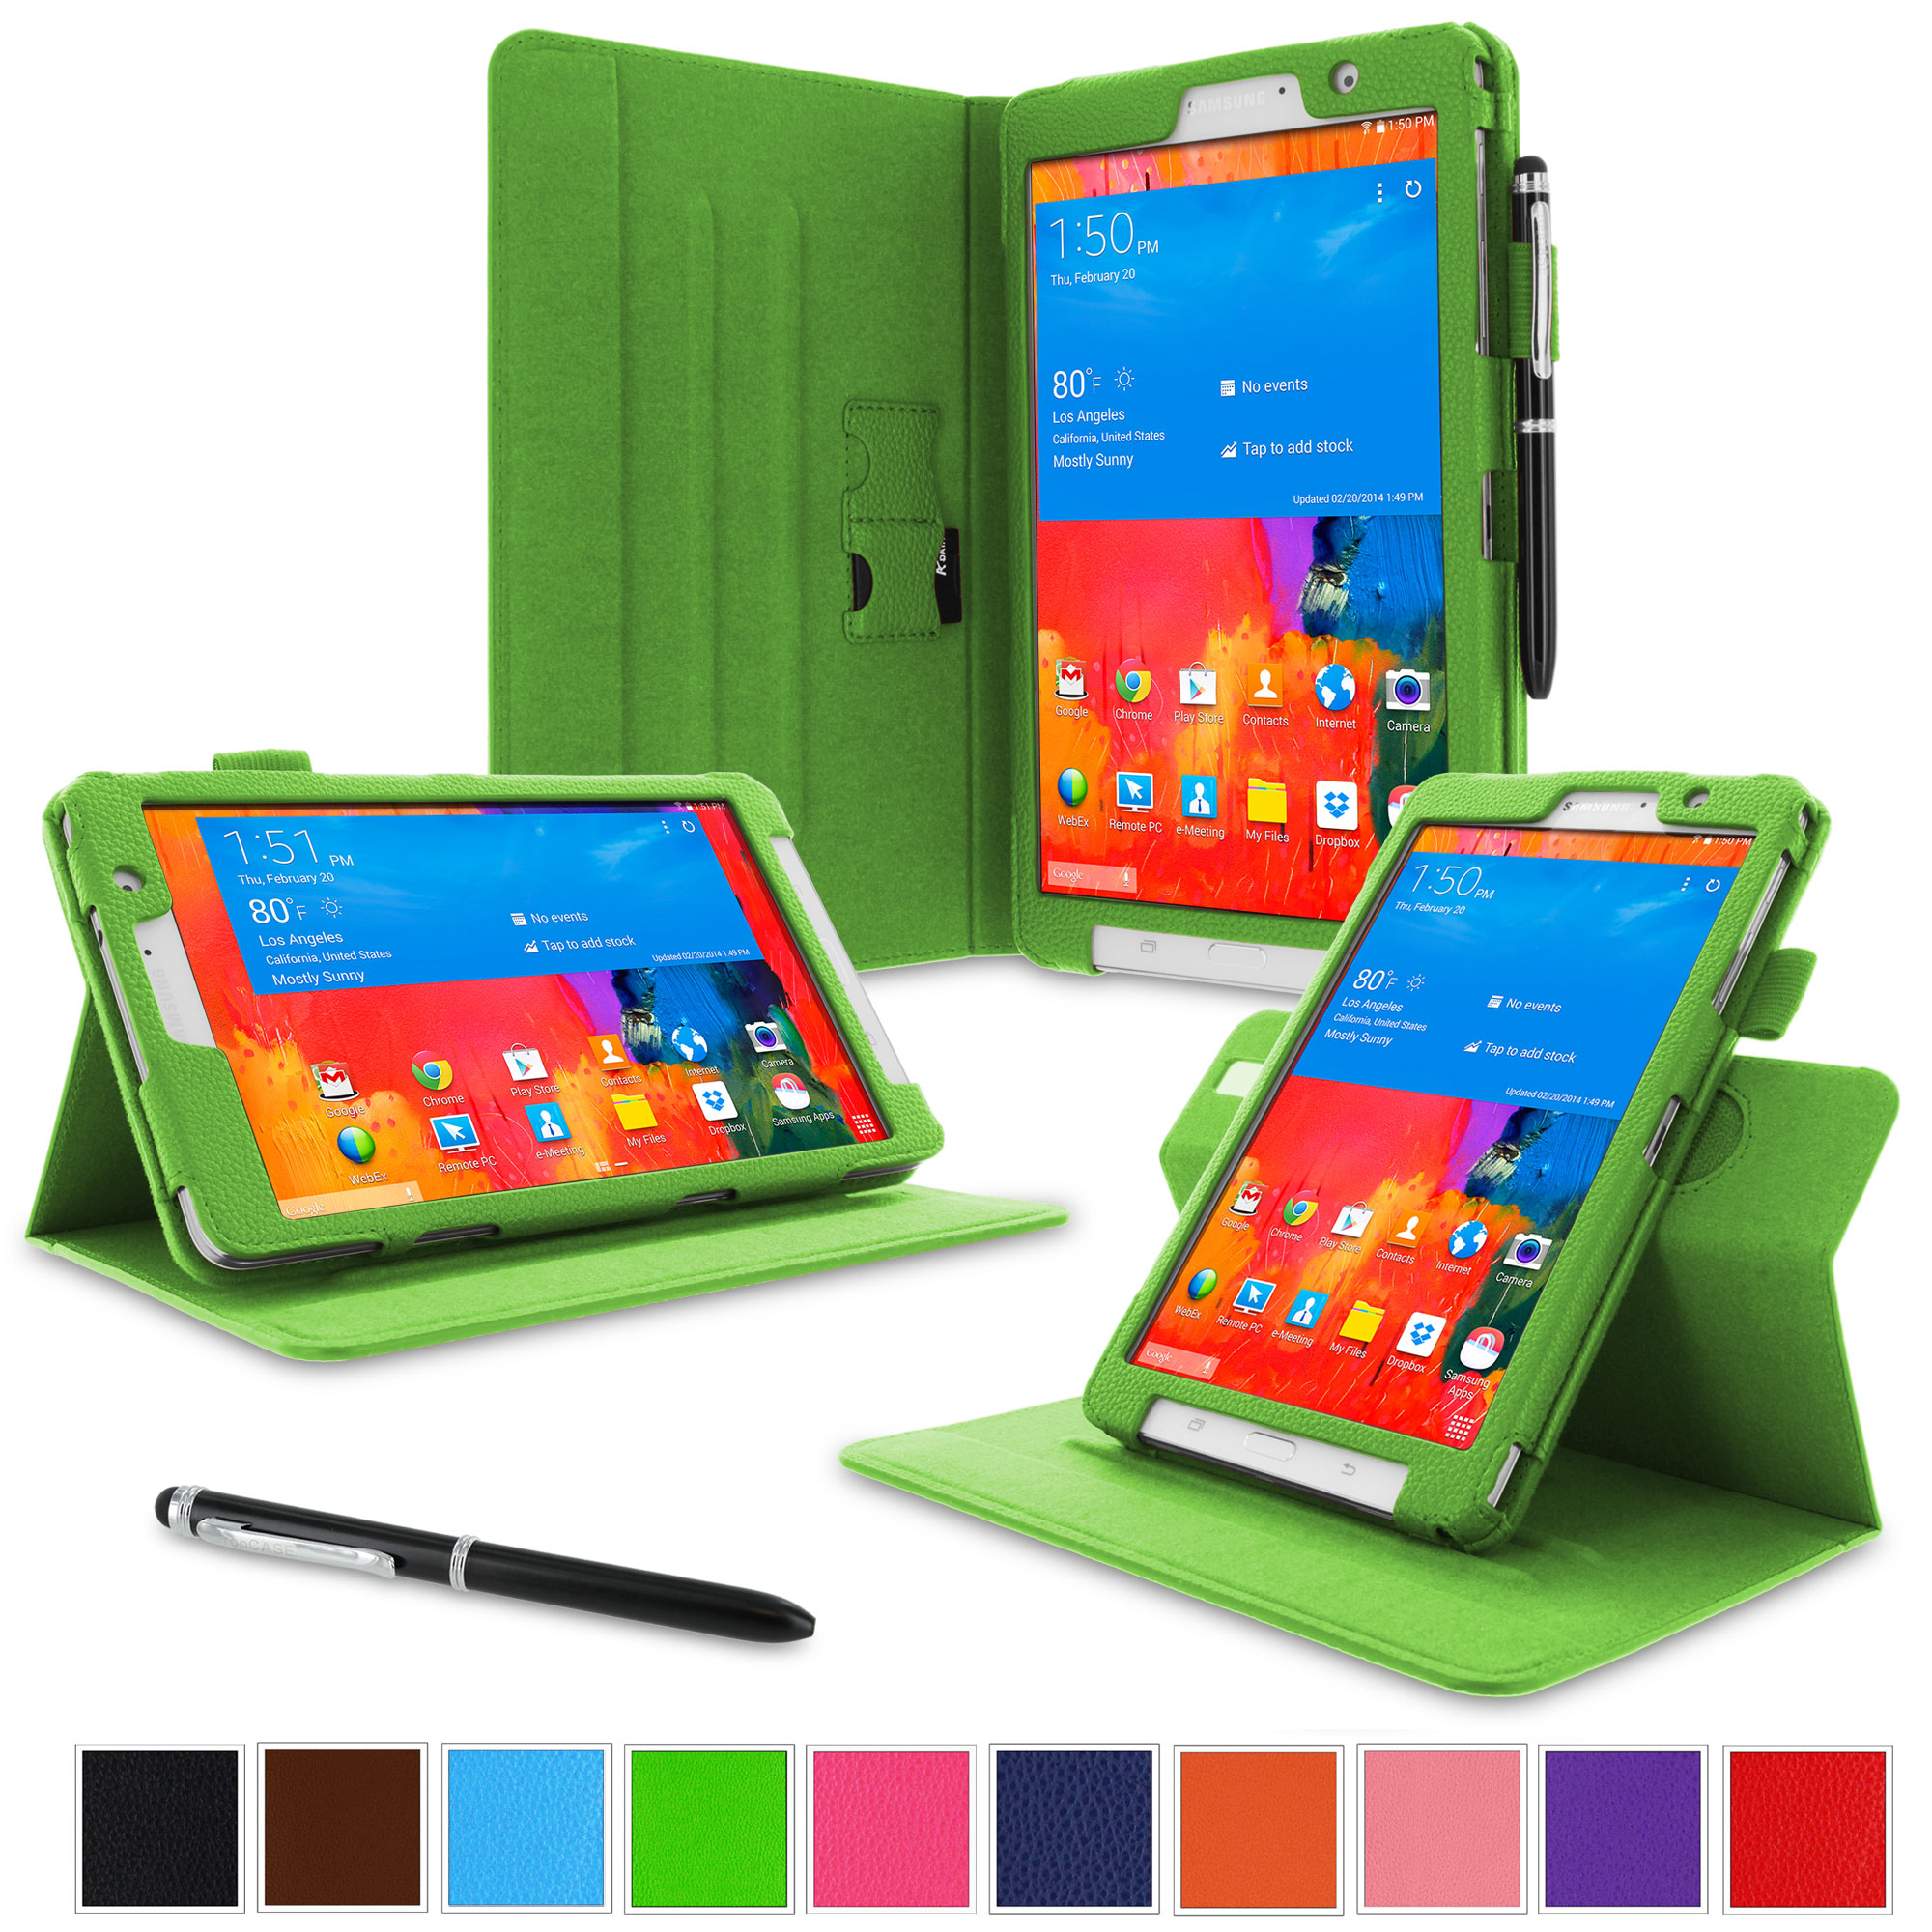 "rooCASE Samsung Galaxy Tab Pro 8.4 Case - Dual View Multi-Angle Stand 8.4-Inch 8.4"" Tablet Case - GREEN (With Auto Wake / Sleep Cover)"